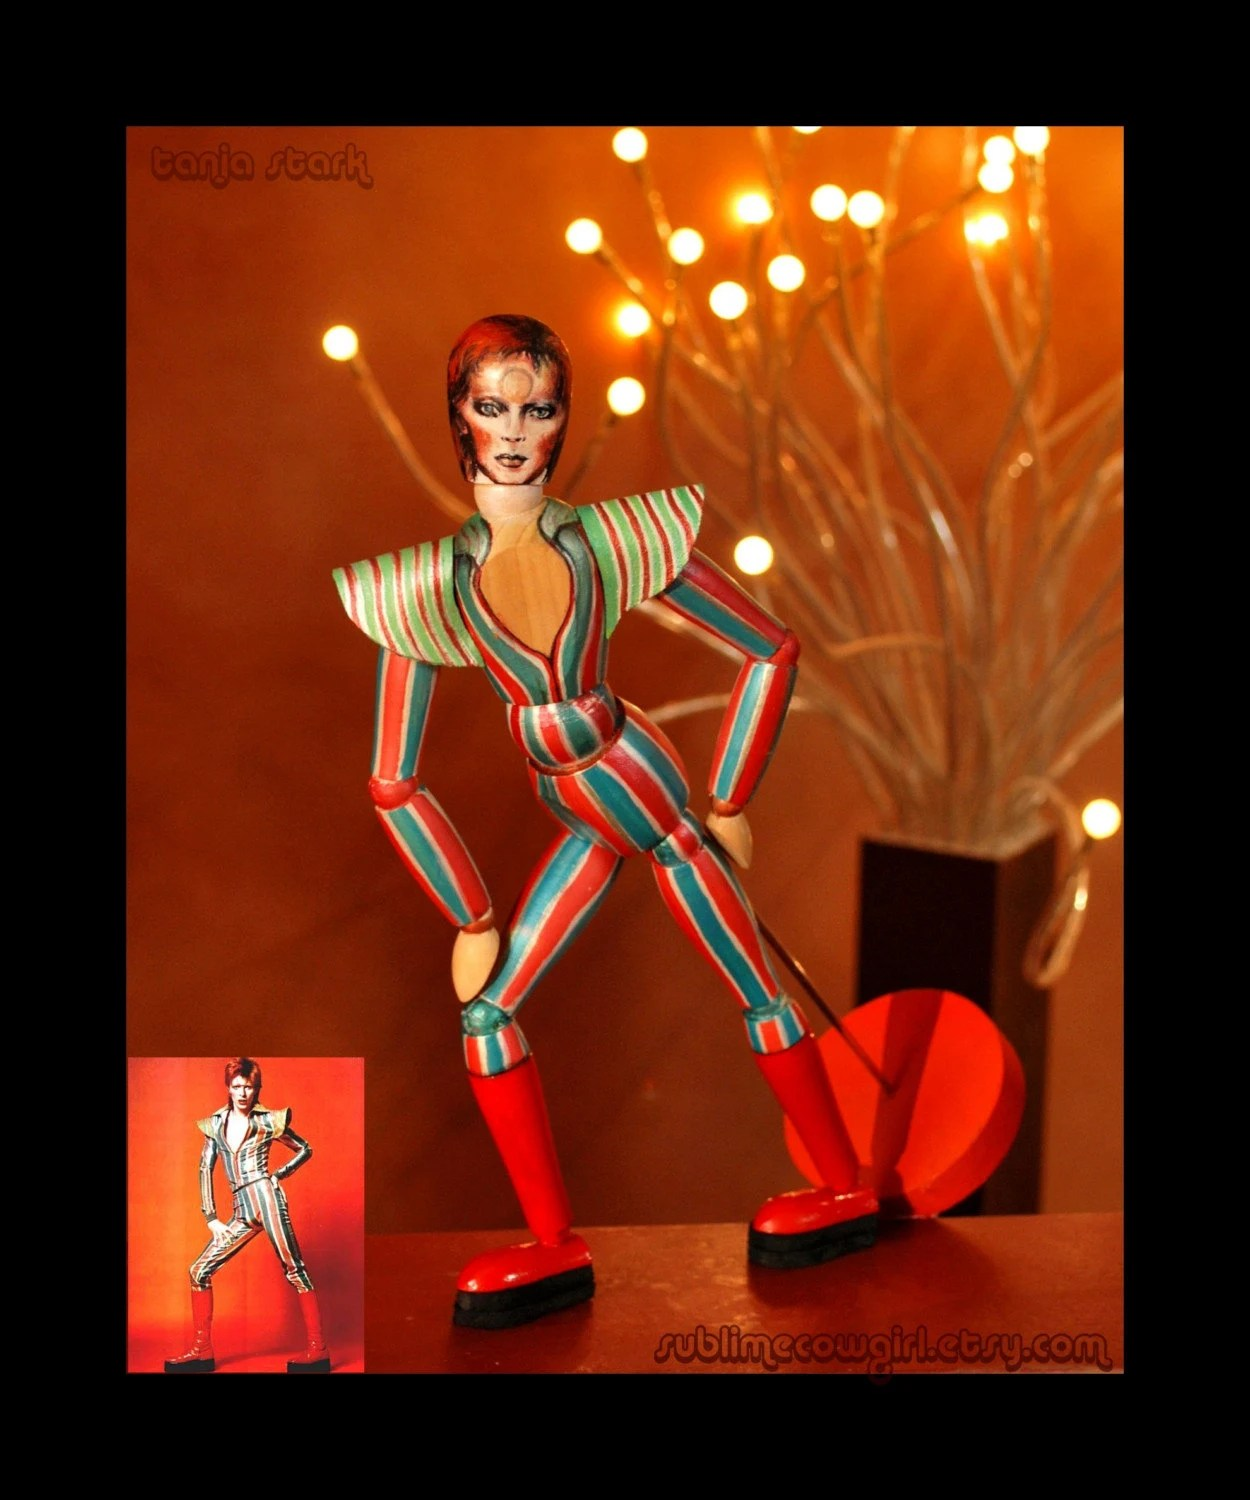 David Bowie Art Mannequin No.1 The Funky Funky Ziggy Stardust Doll by Sublimecowgirl